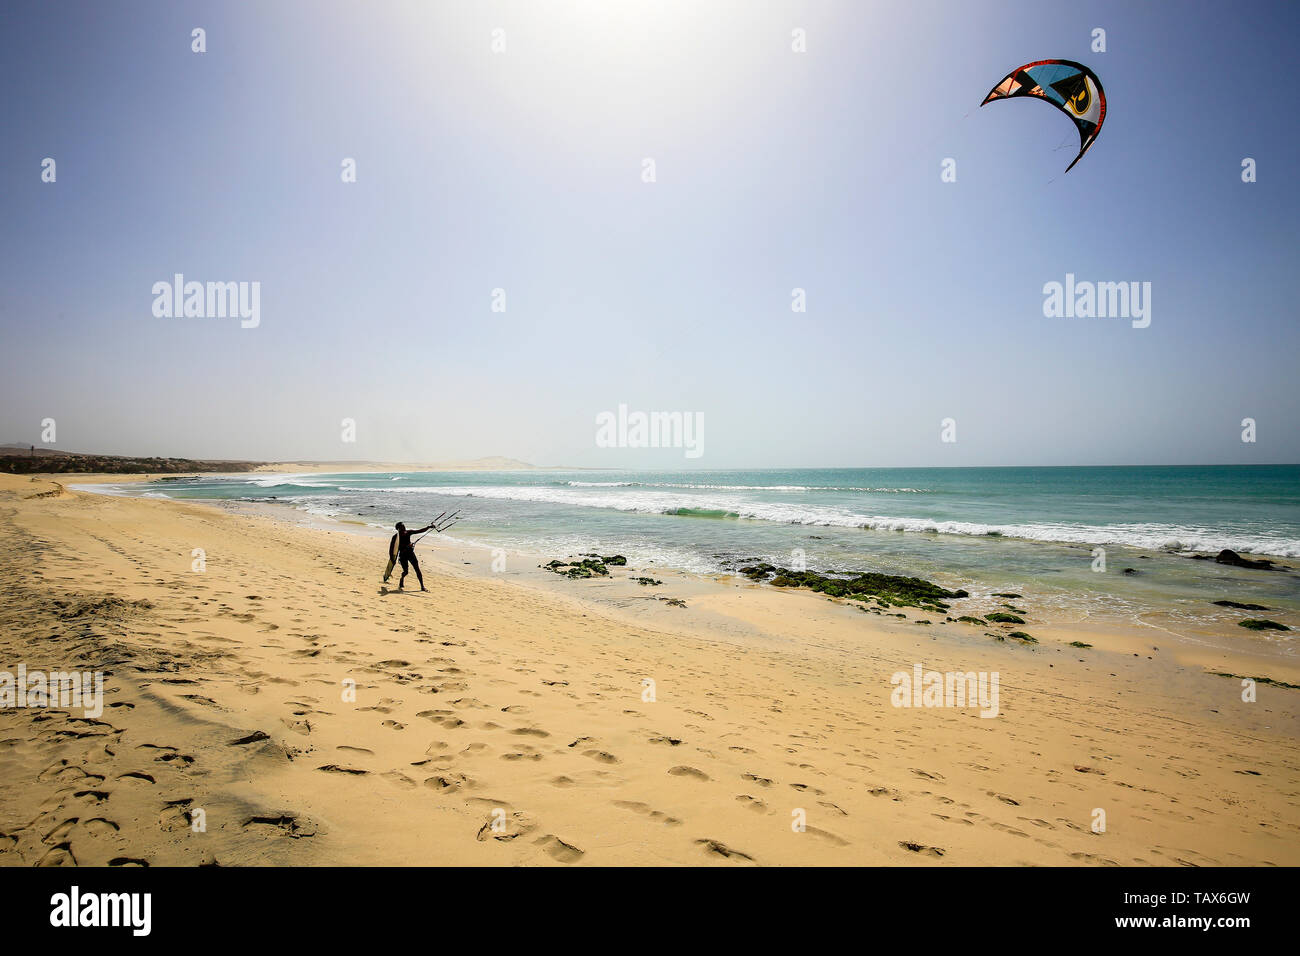 20.02.2019, Sal Rei, Boa Vista, Cape Verde Islands - Praia de Chaves, kitesurfer on the sandy beach. 00X190220D017CAROEX.JPG [MODEL RELEASE: NO, PROPE Stock Photo